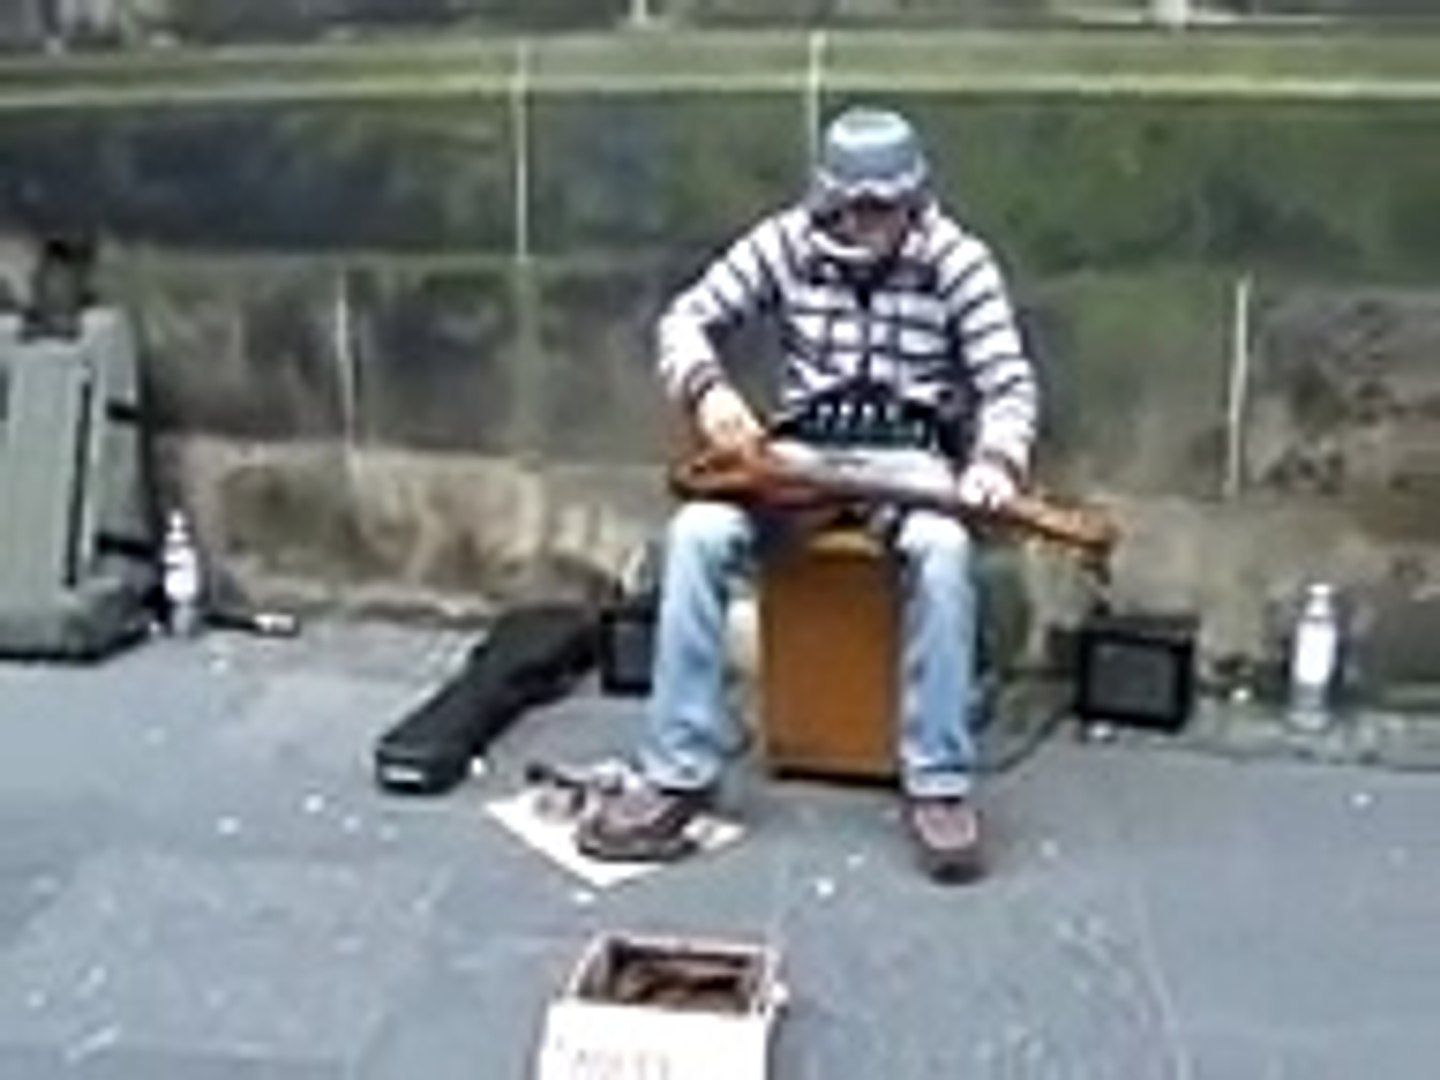 Crazy Good Multi Instrument Street Musician